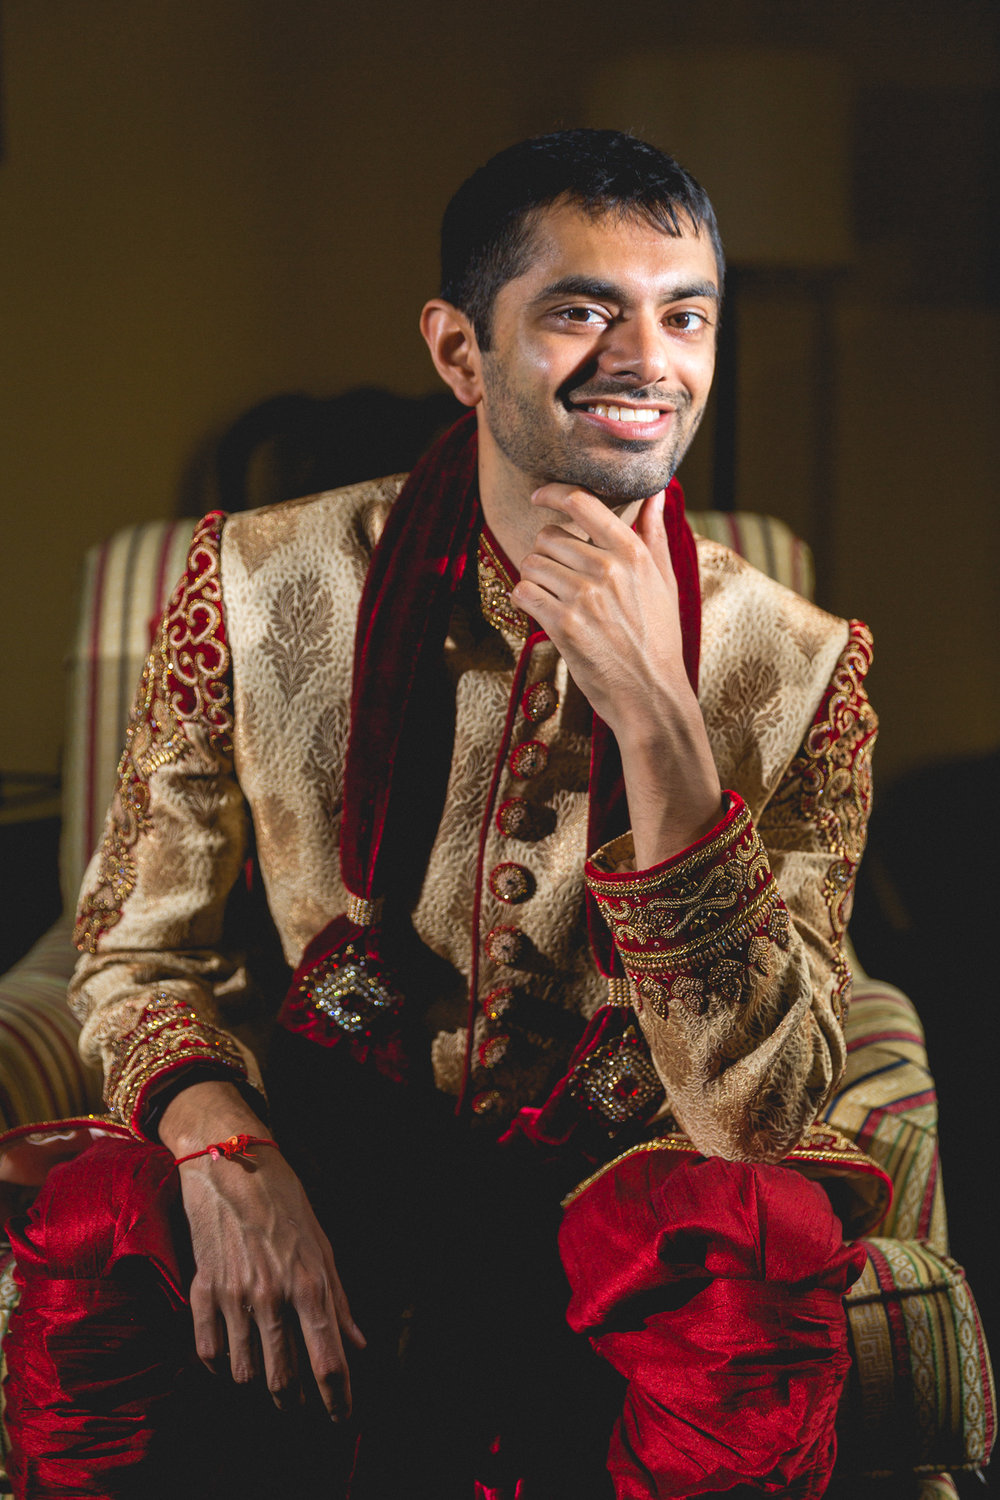 indian-south-asian-wedding-getting-ready-details-57.jpg